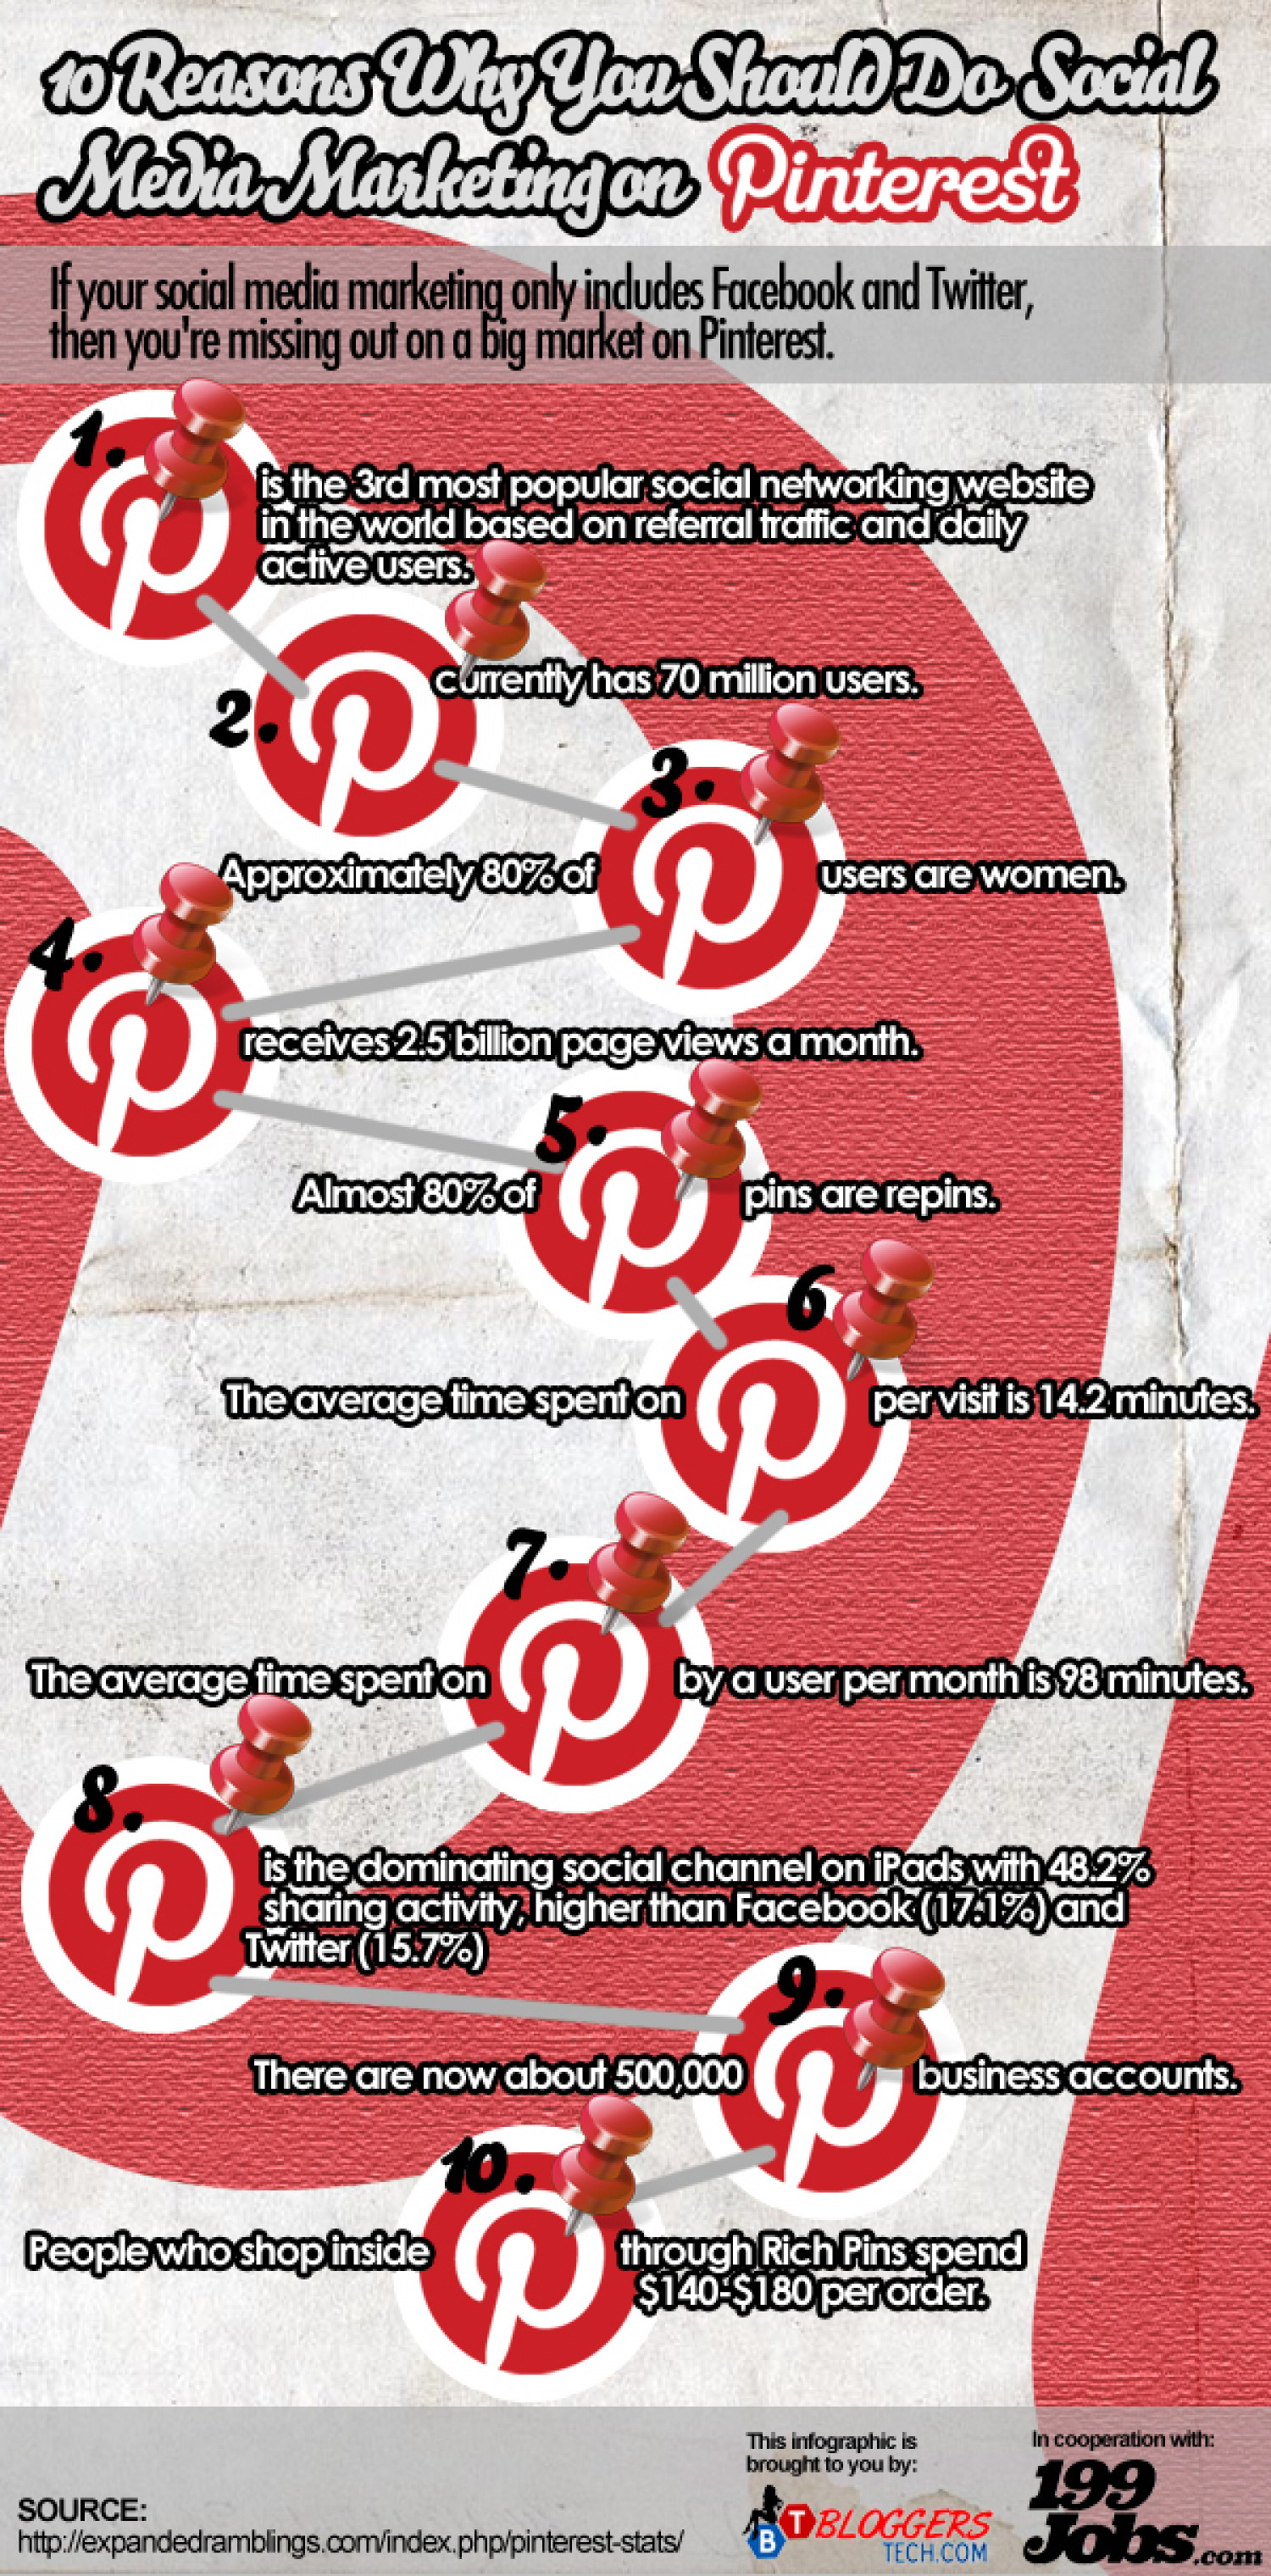 10 Reasons Why You Should Do Social Media Marketing on Pinterest Infographic